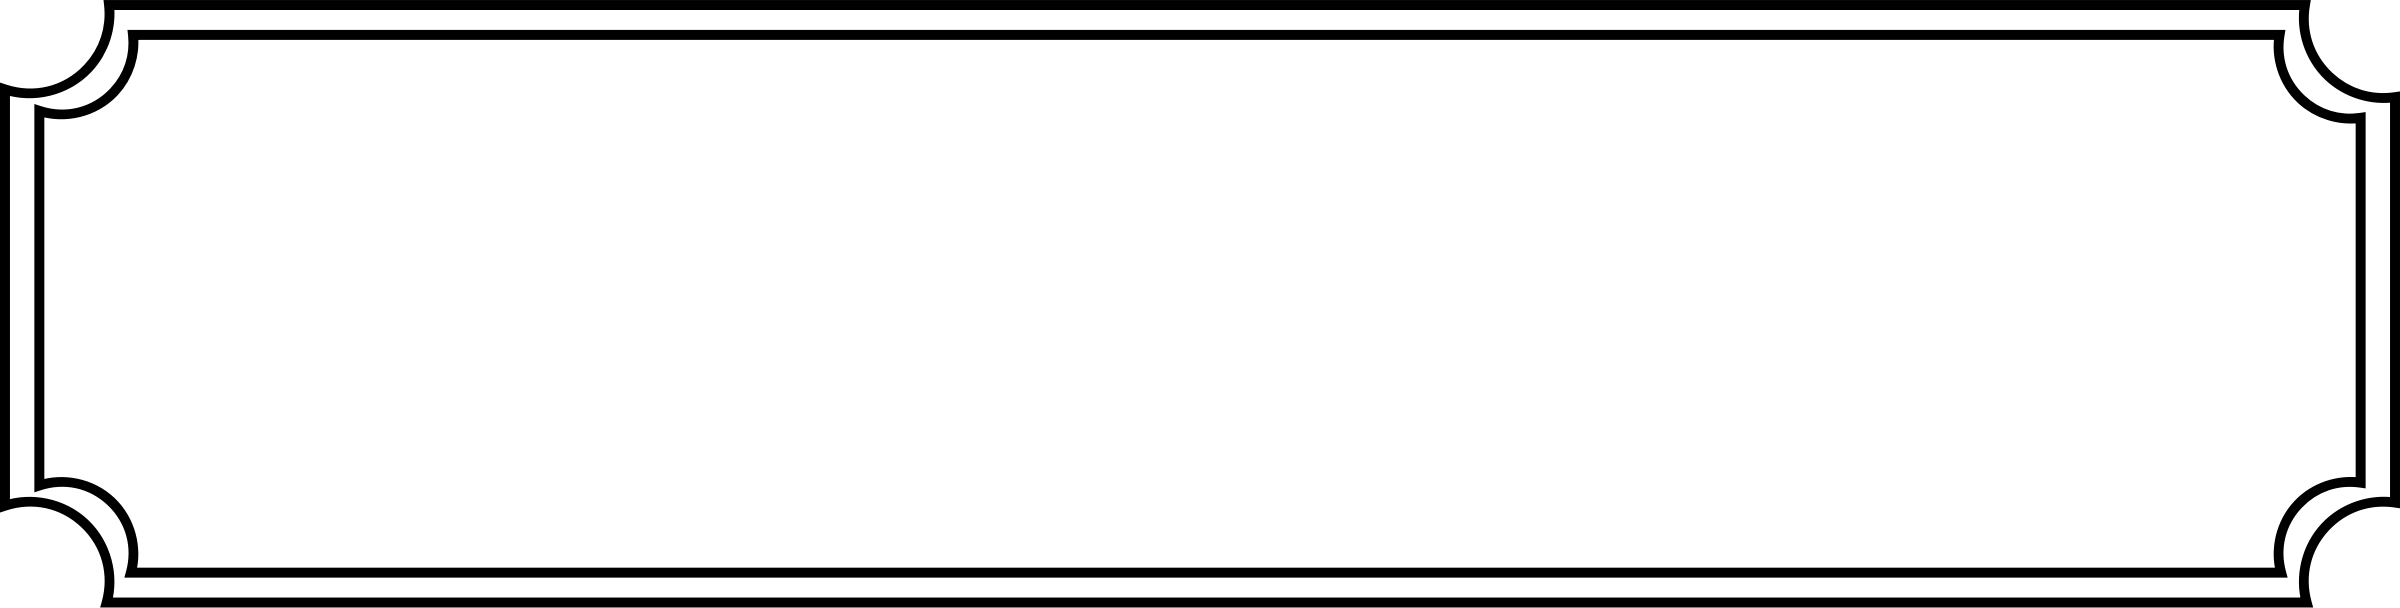 Banner big image png. Square clipart empty